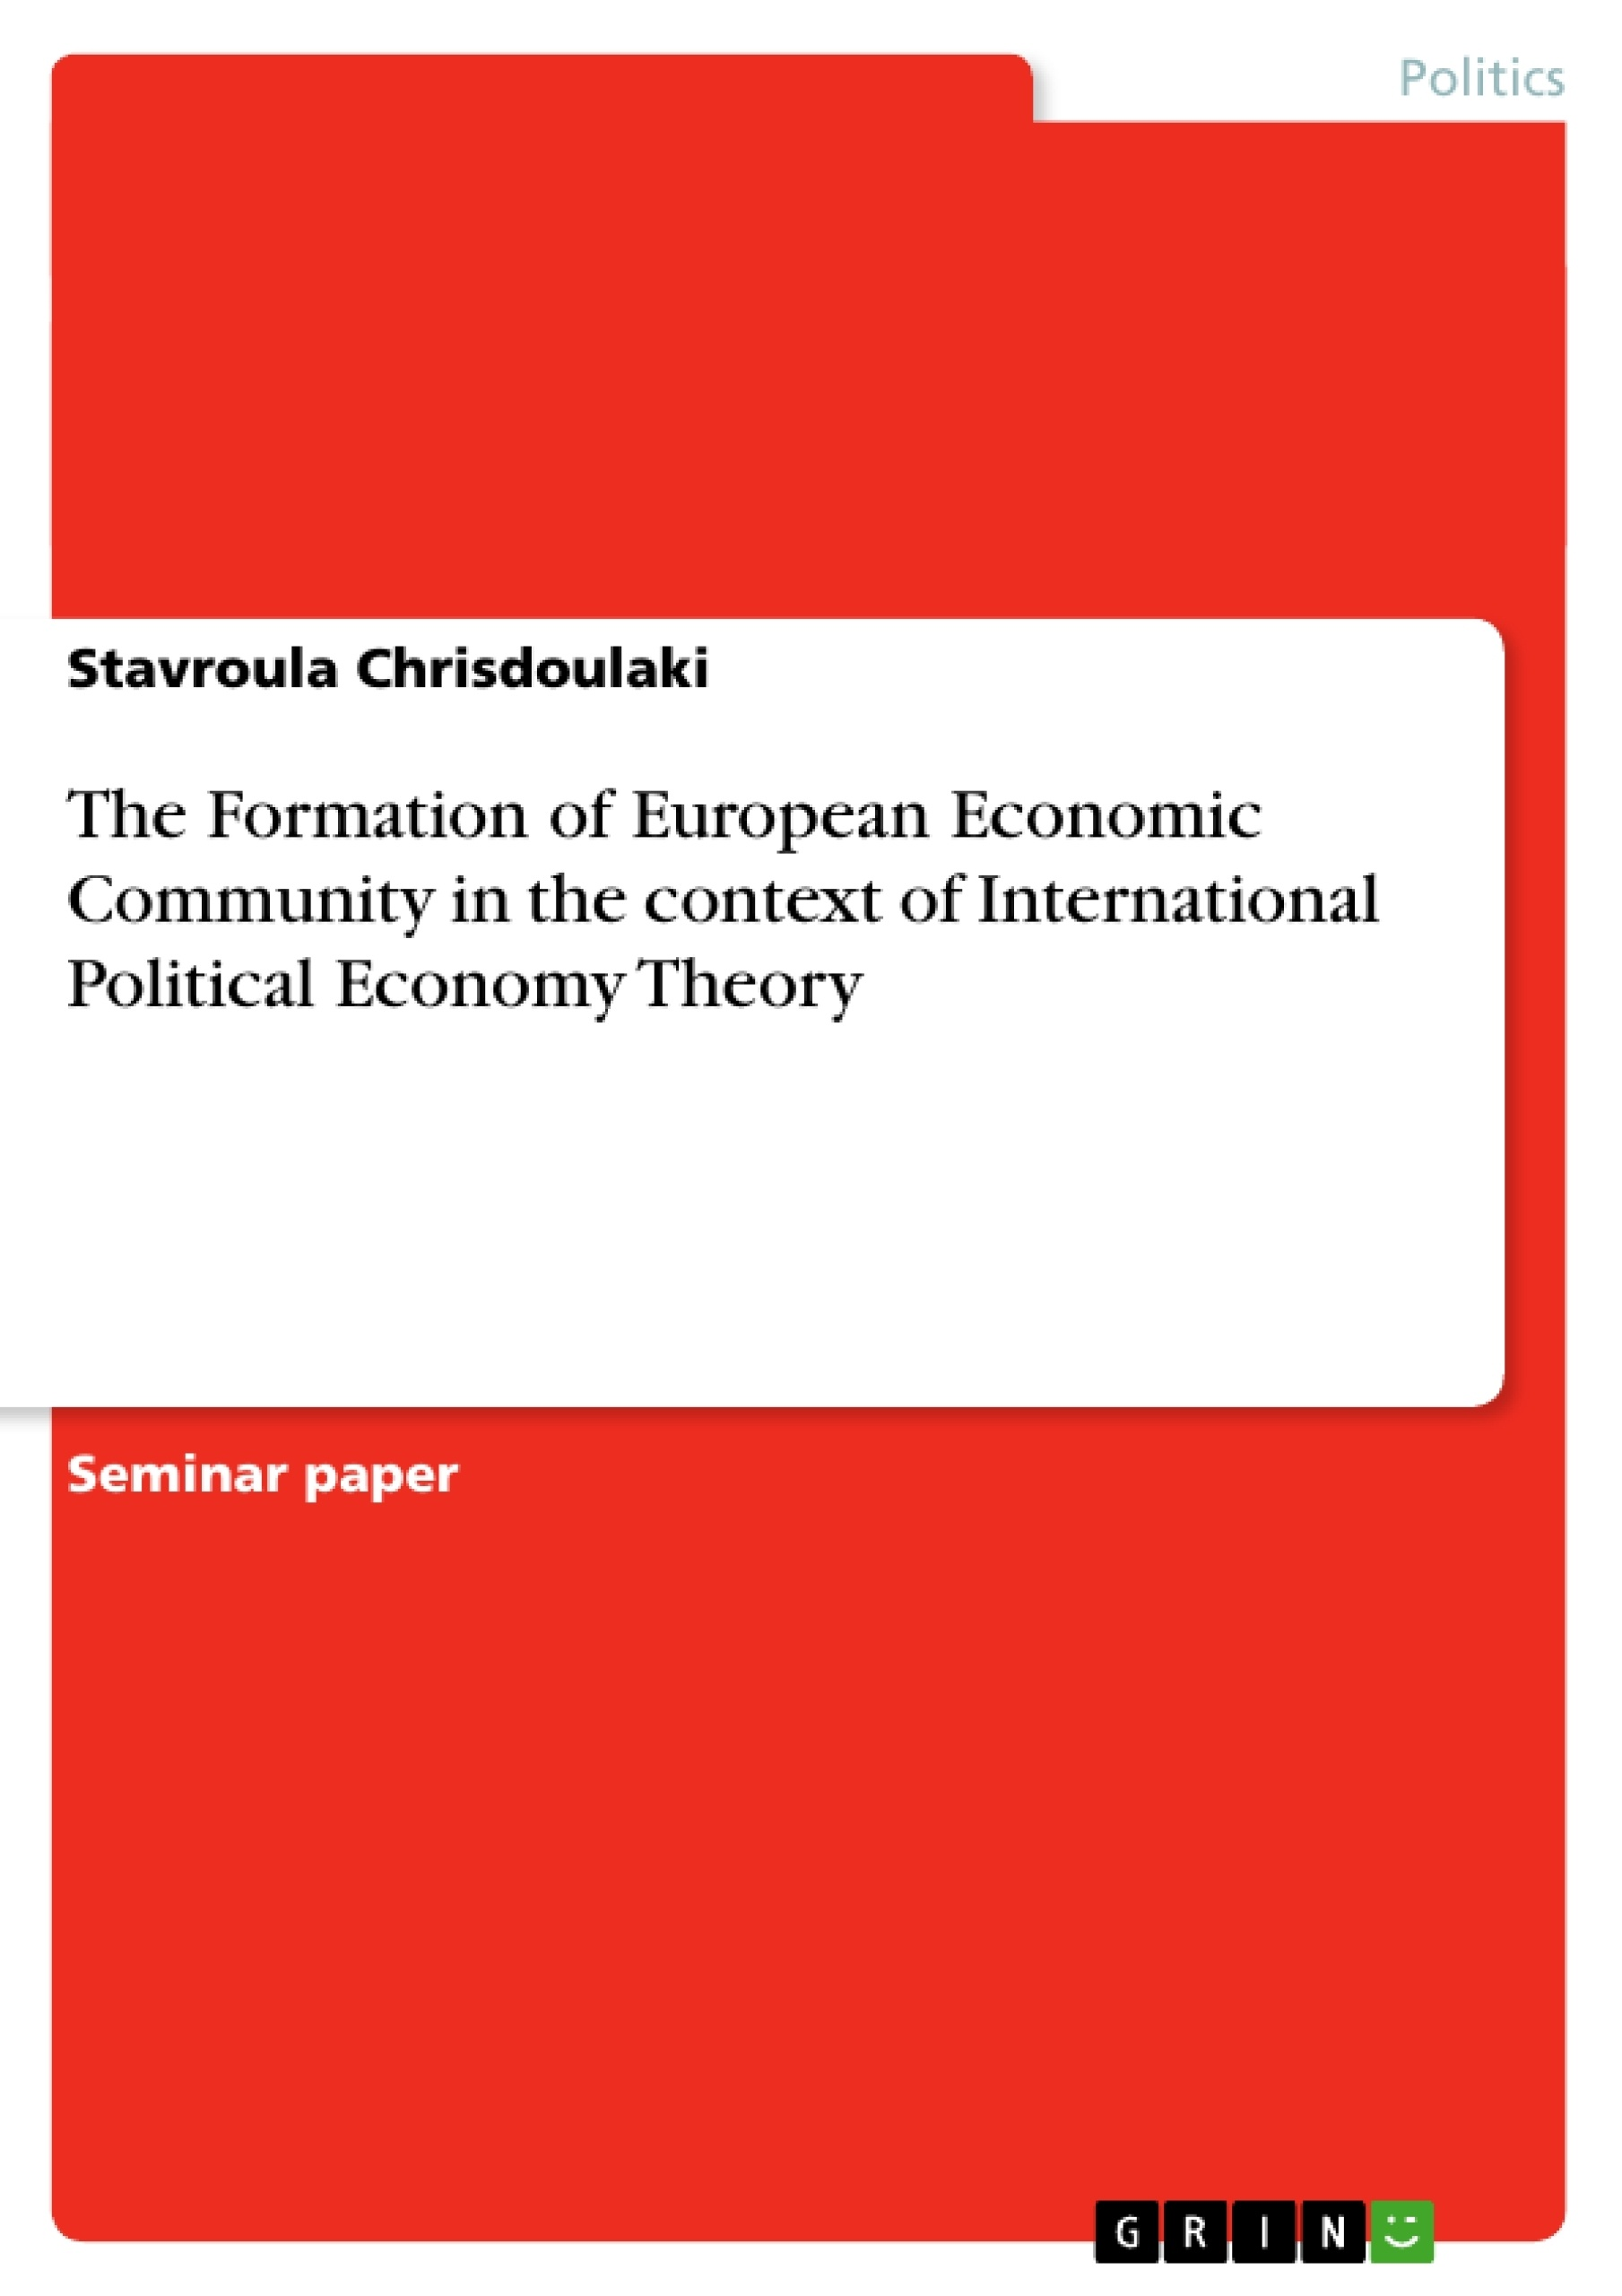 Title: The Formation of European Economic Community in the context of International Political Economy Theory